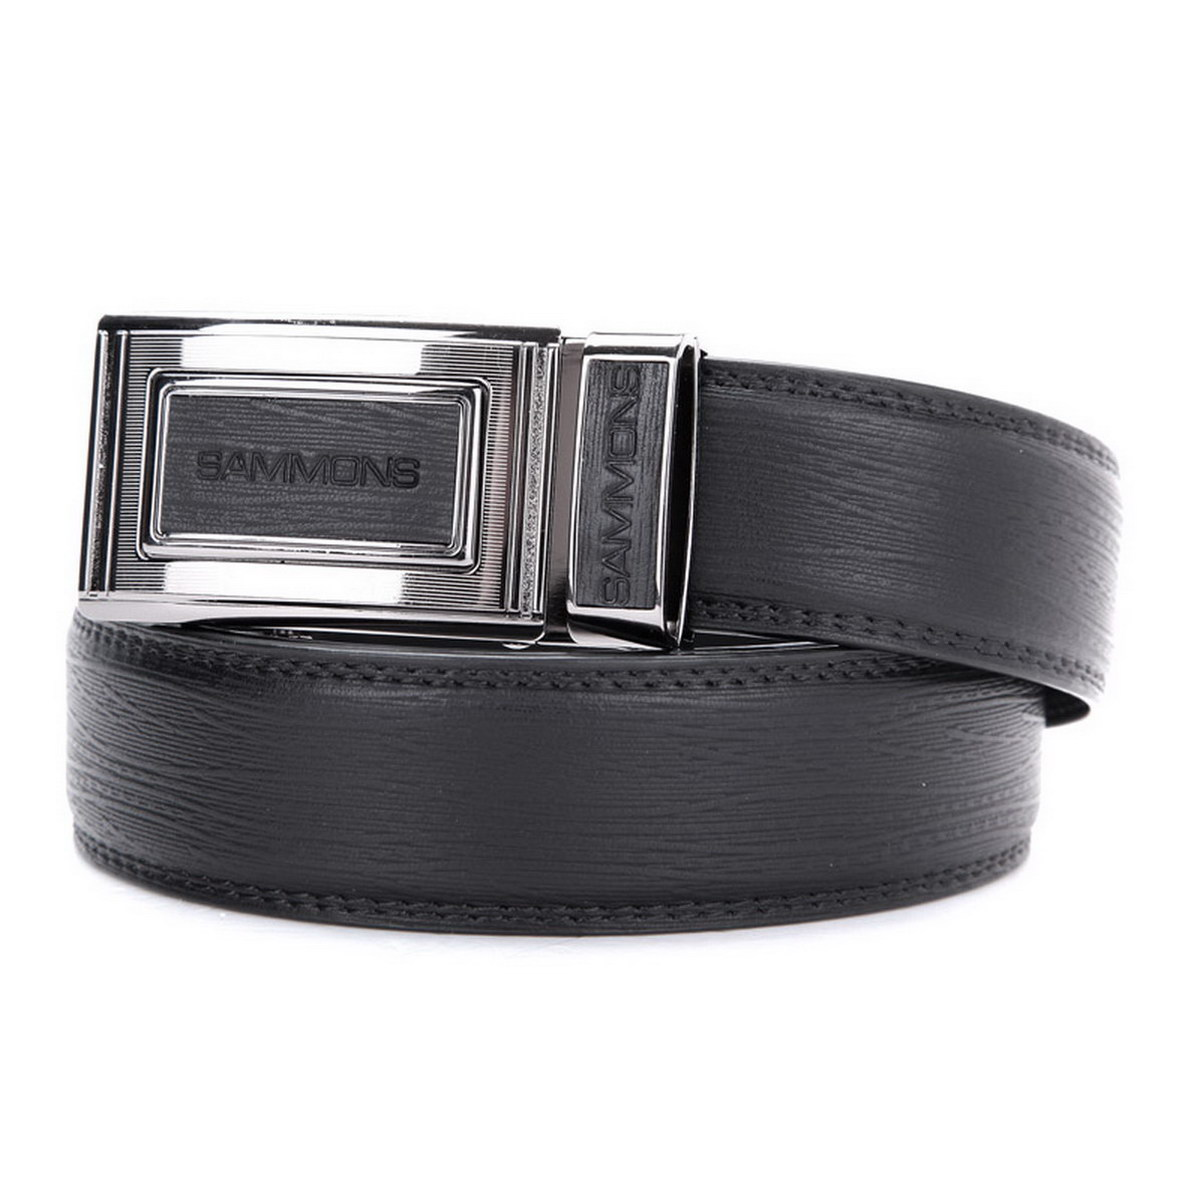 We offer cheap belts for men, ladies and kids! We have the very best martial arts belts for MMA and Martial Arts enthusiasts. We also have a superb collection of bags and .